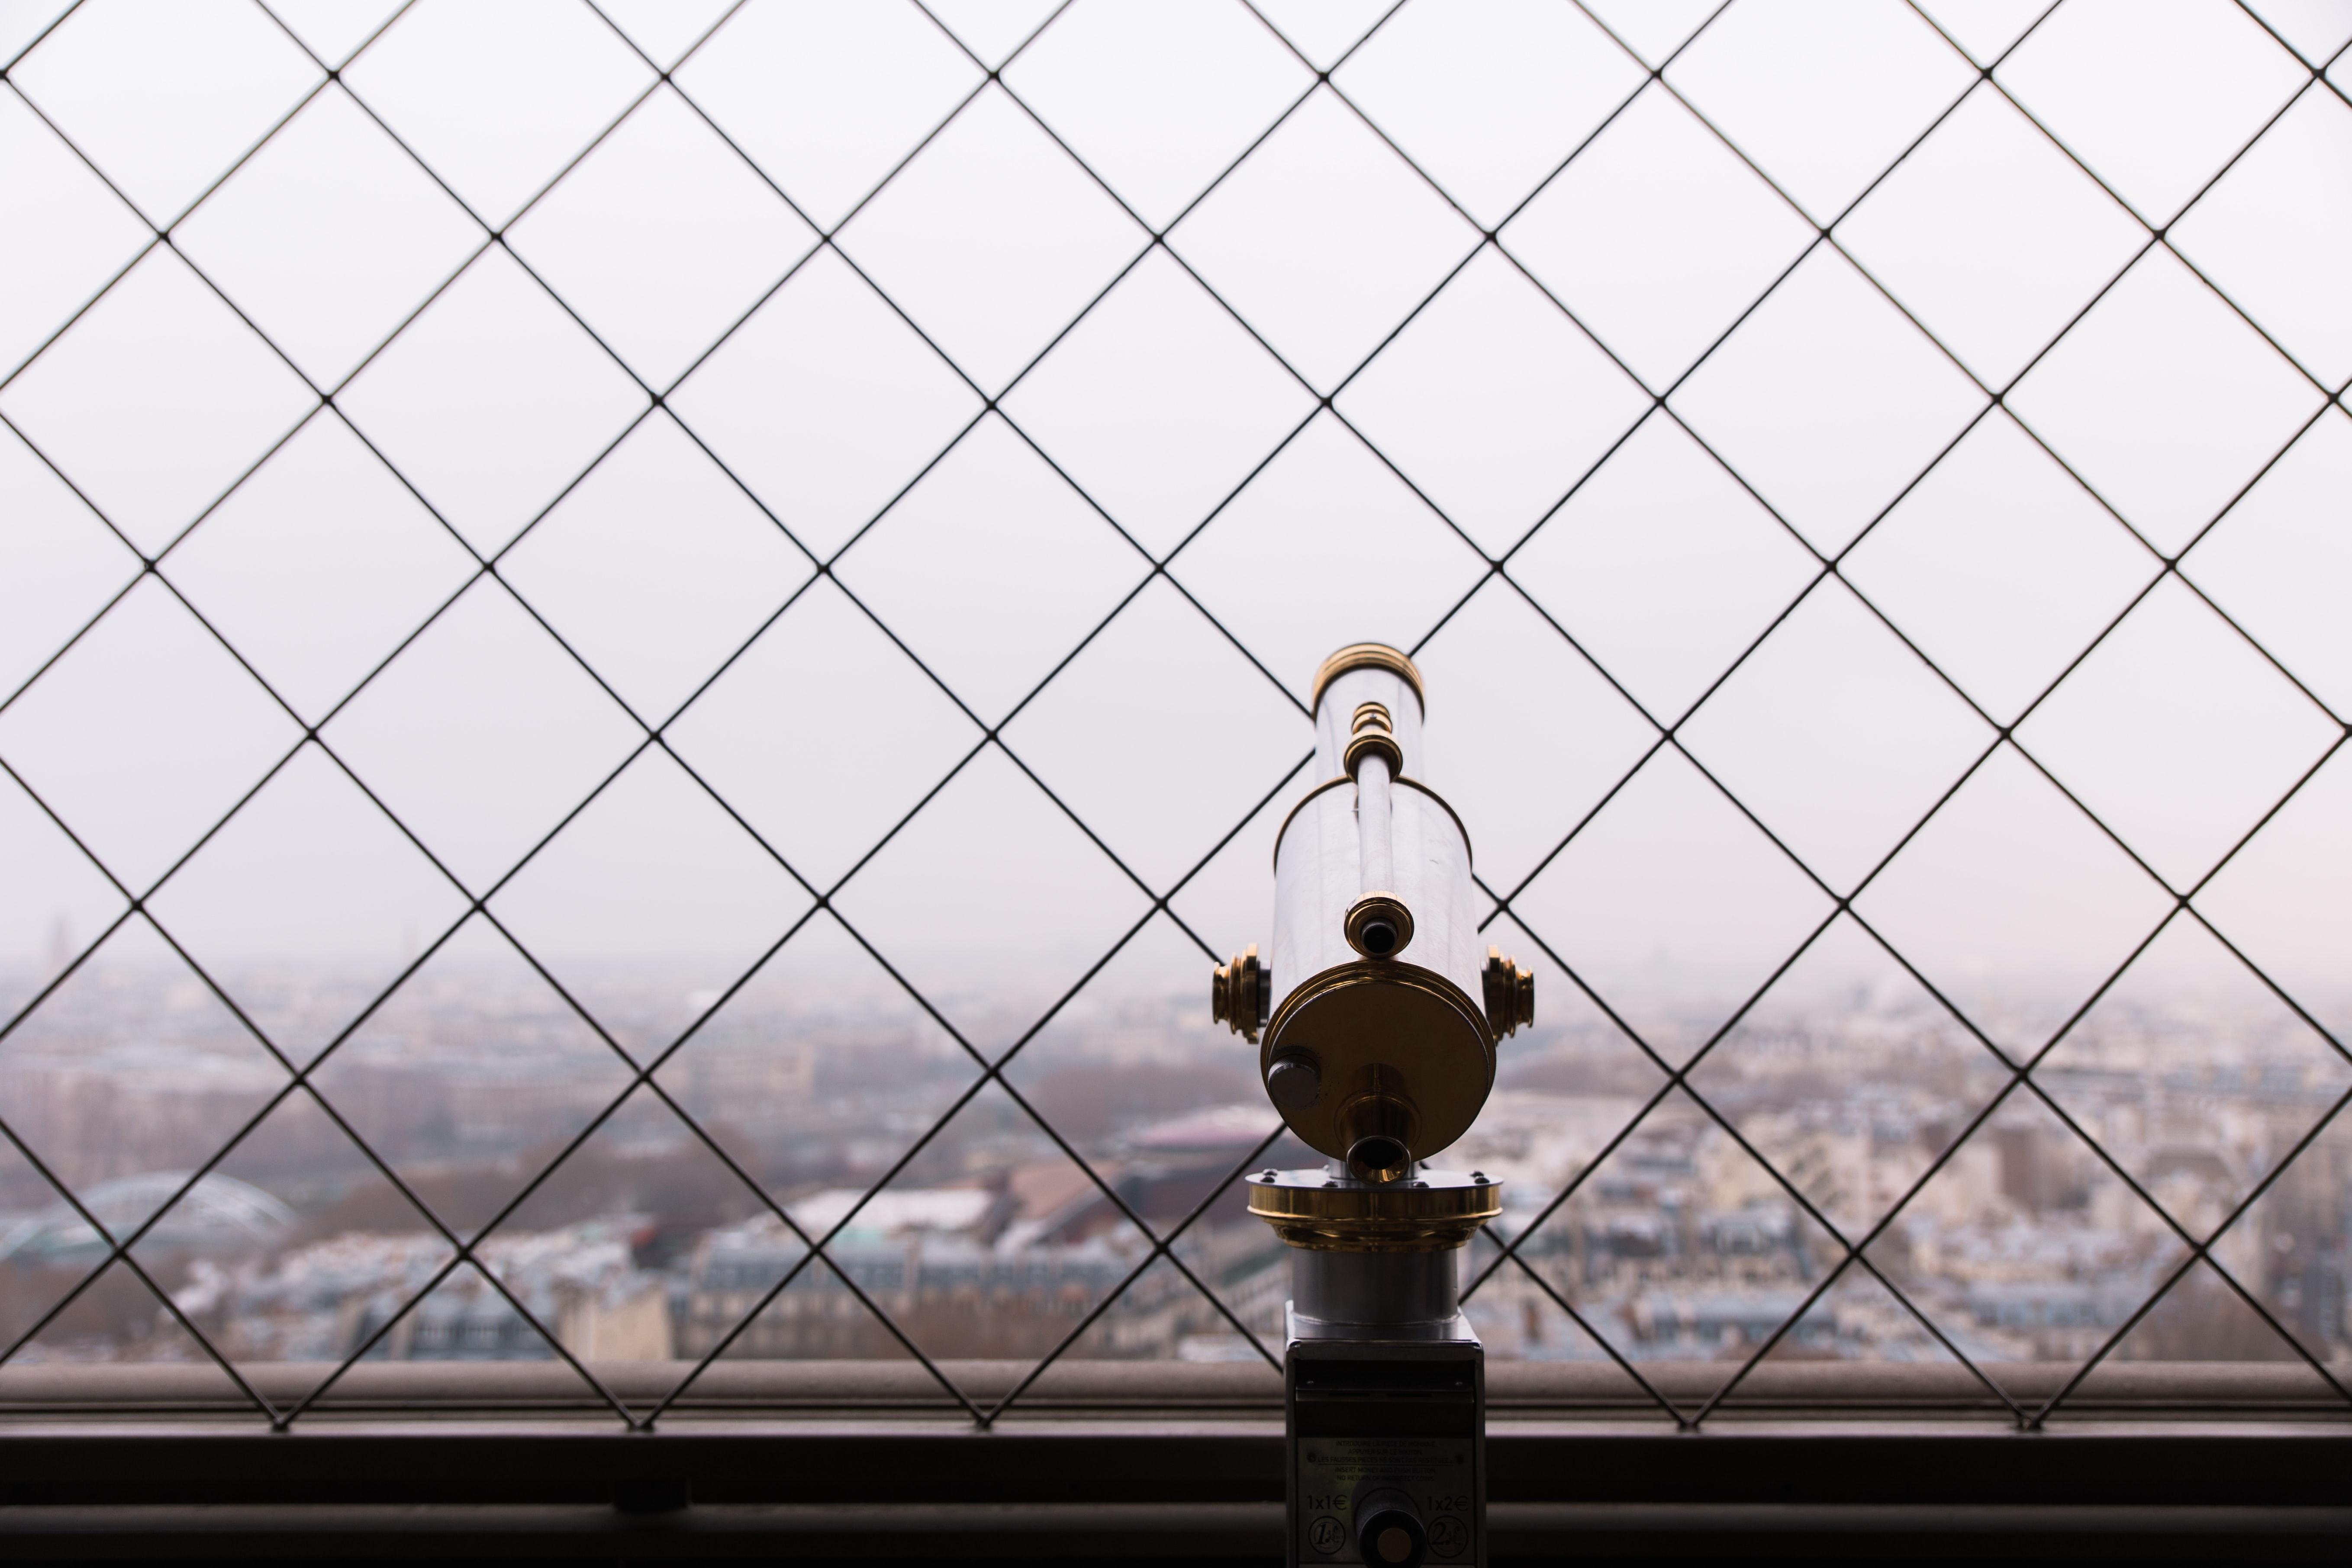 Telescope viewfinder with Paris cityscape in the background